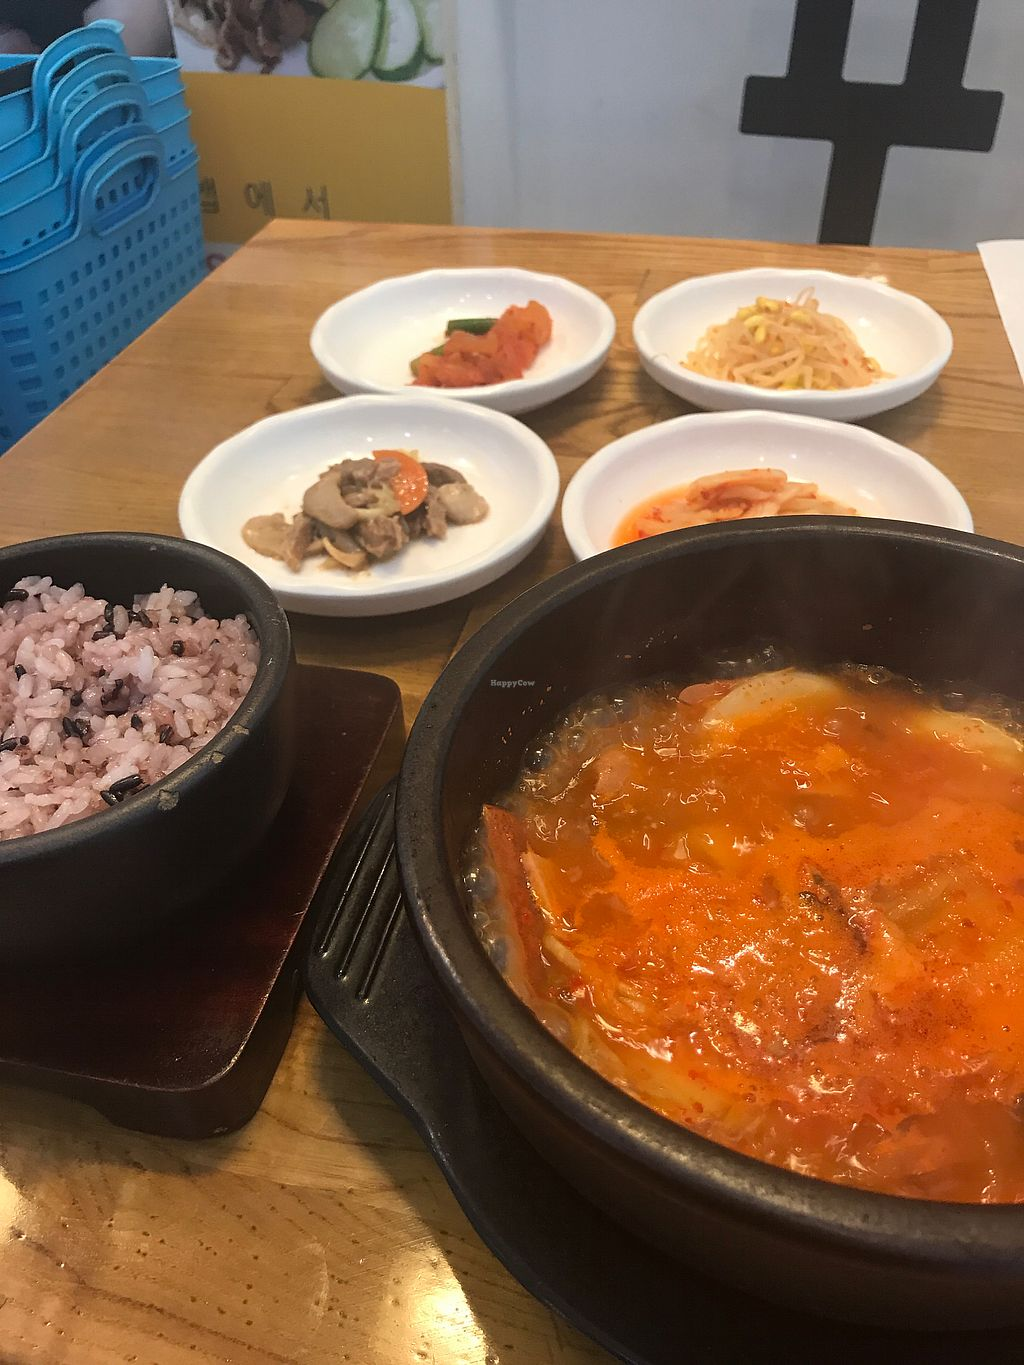 """Photo of CLOSED: Babione - 바비오네  by <a href=""""/members/profile/edwardbc"""">edwardbc</a> <br/>kimchi stew  <br/> August 12, 2017  - <a href='/contact/abuse/image/50225/292018'>Report</a>"""